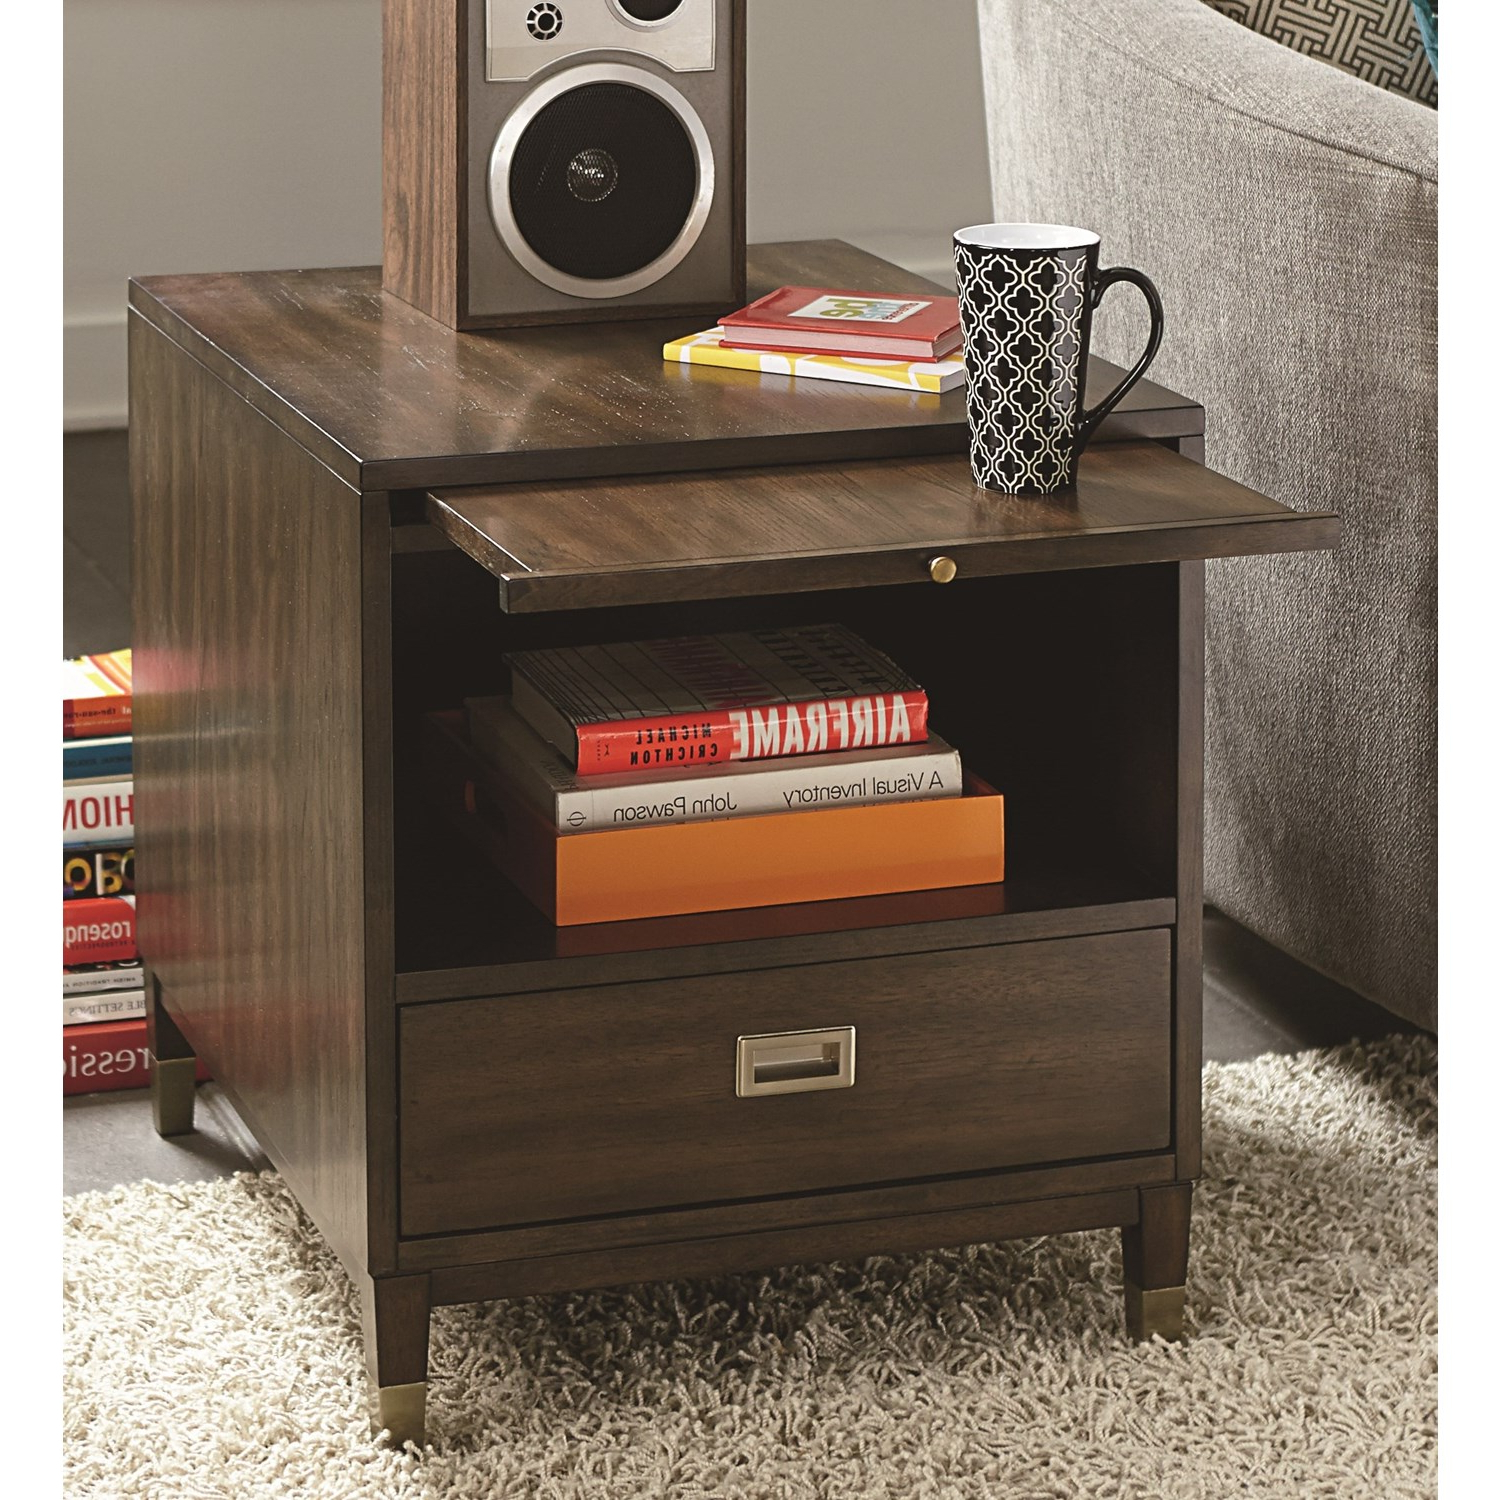 Hammary Furniture Stratus Umber Brown Pecan Rectangular Drawer End Throughout 2018 Stratus Cocktail Tables (View 5 of 20)